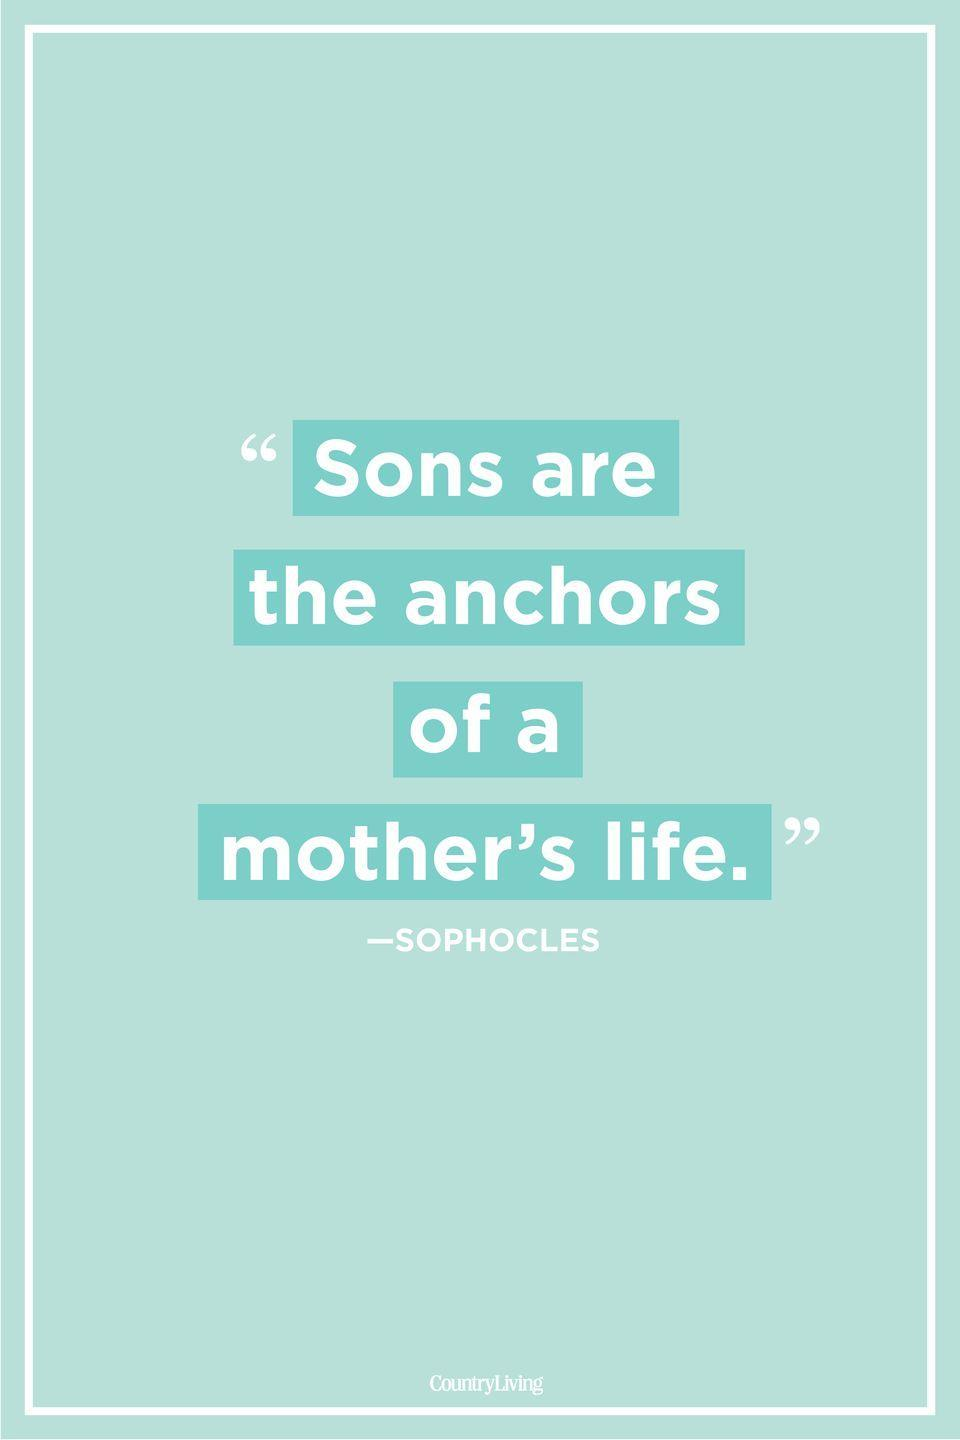 "<p>""Sons are the anchors of a mother's life.""</p>"